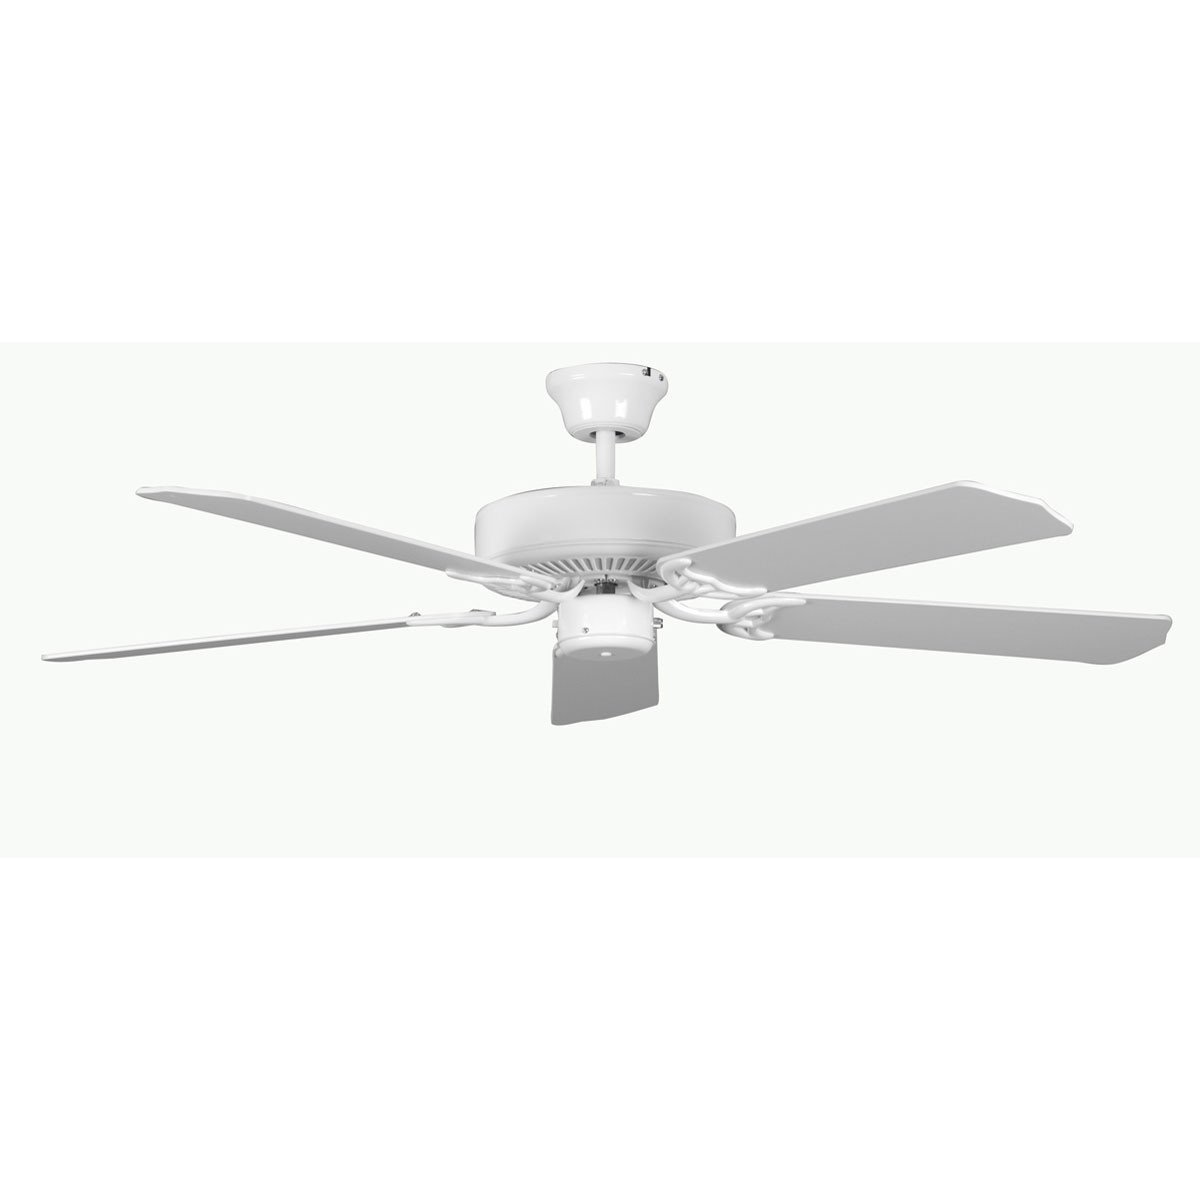 Concord Ceiling Fan Wiring Diagram : Concord fans quot heritage white simple attractive ceiling